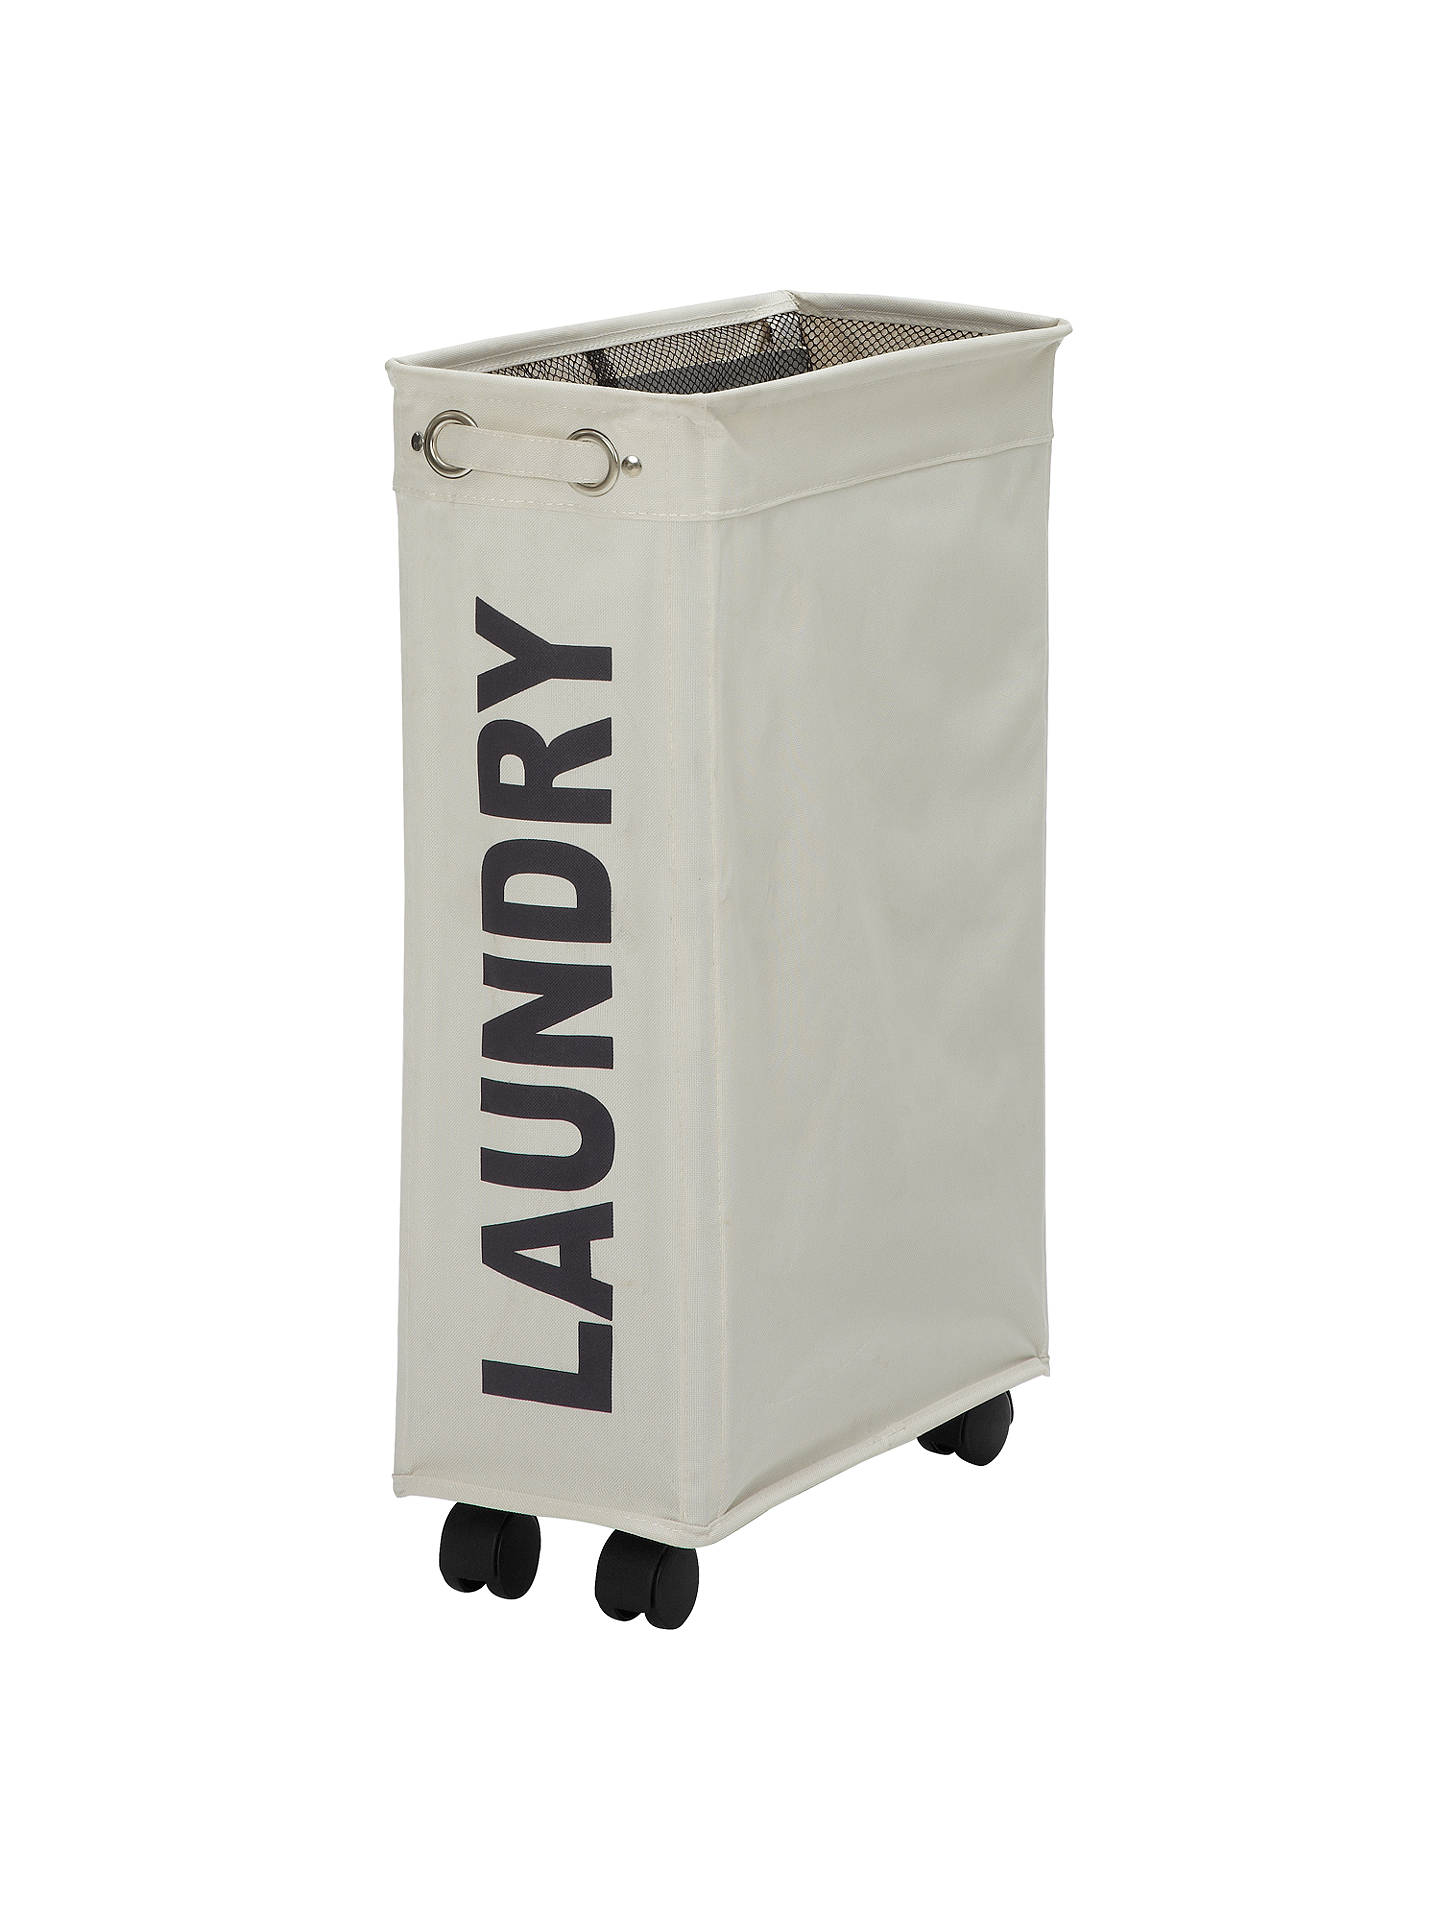 Wenko Slimline Laundry Hamper At John Lewis Amp Partners